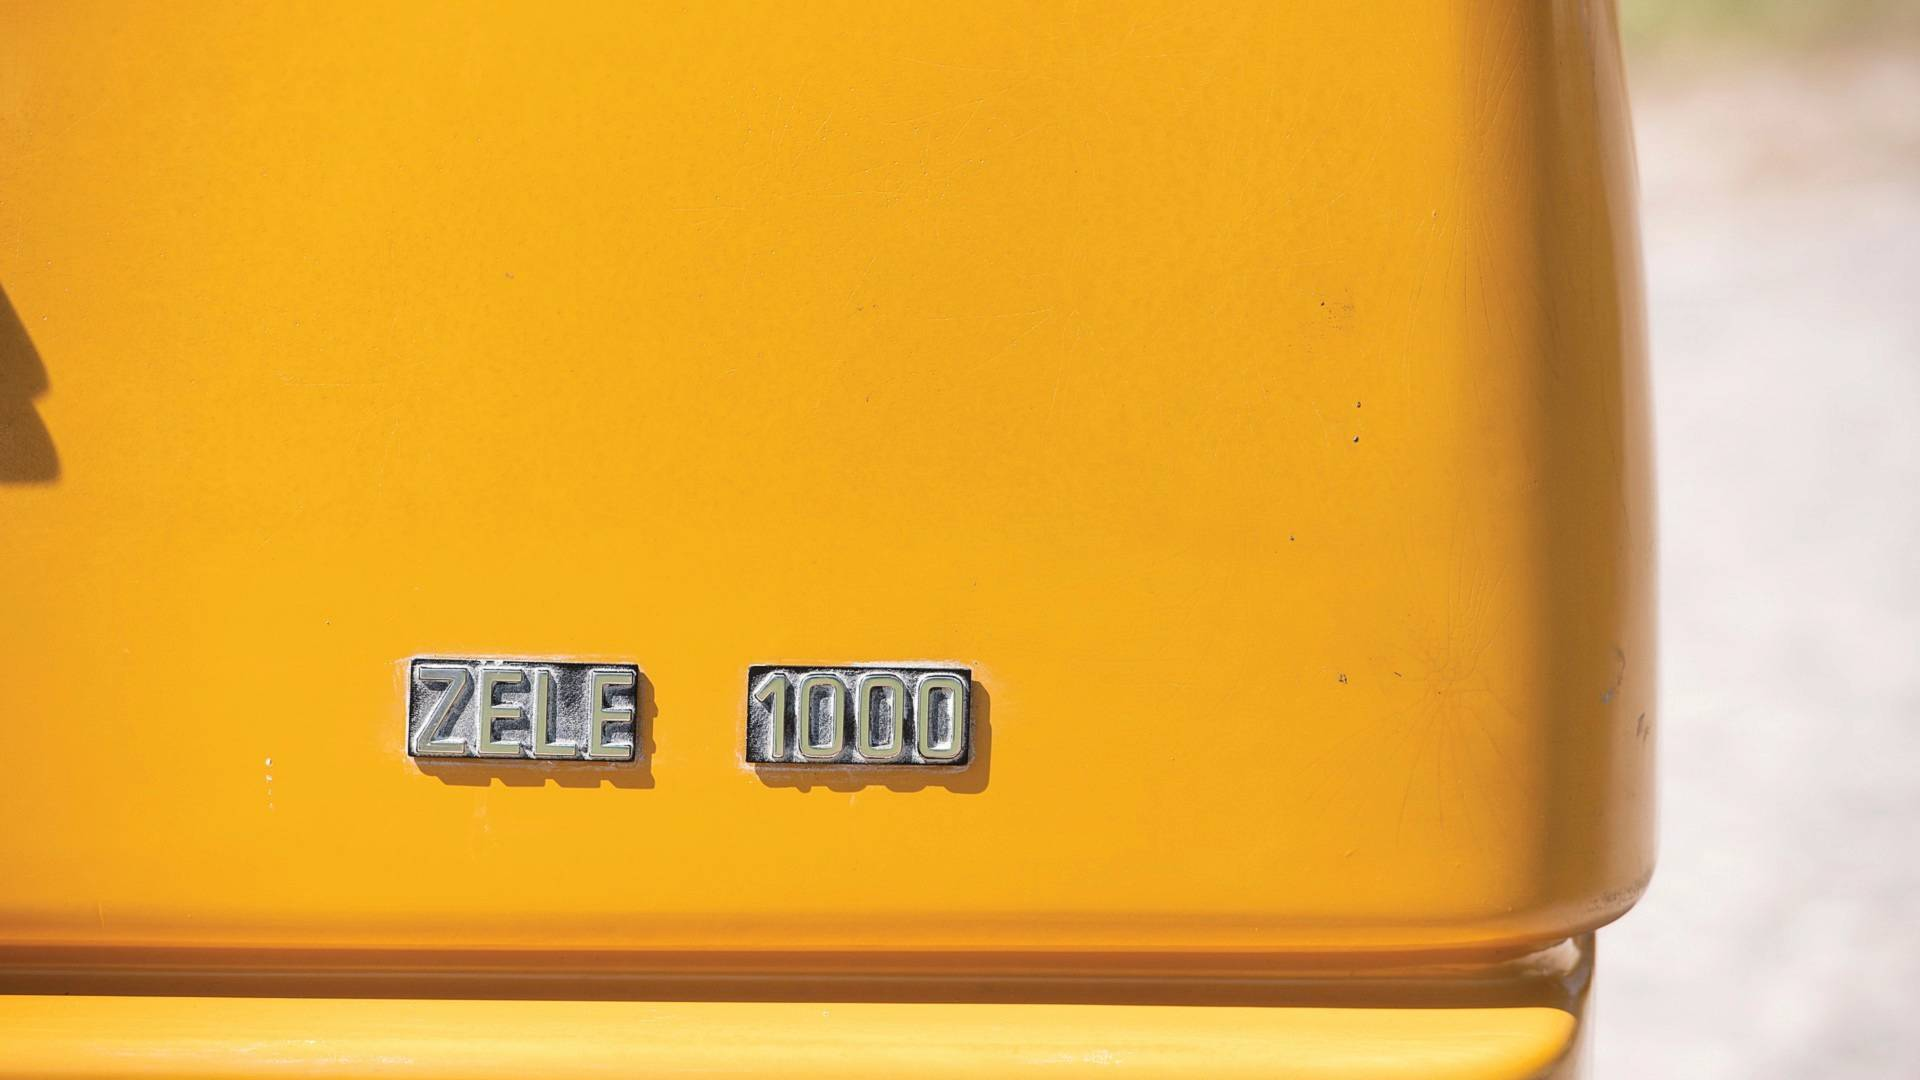 Zagato Zele 100 1974 for sale (9)